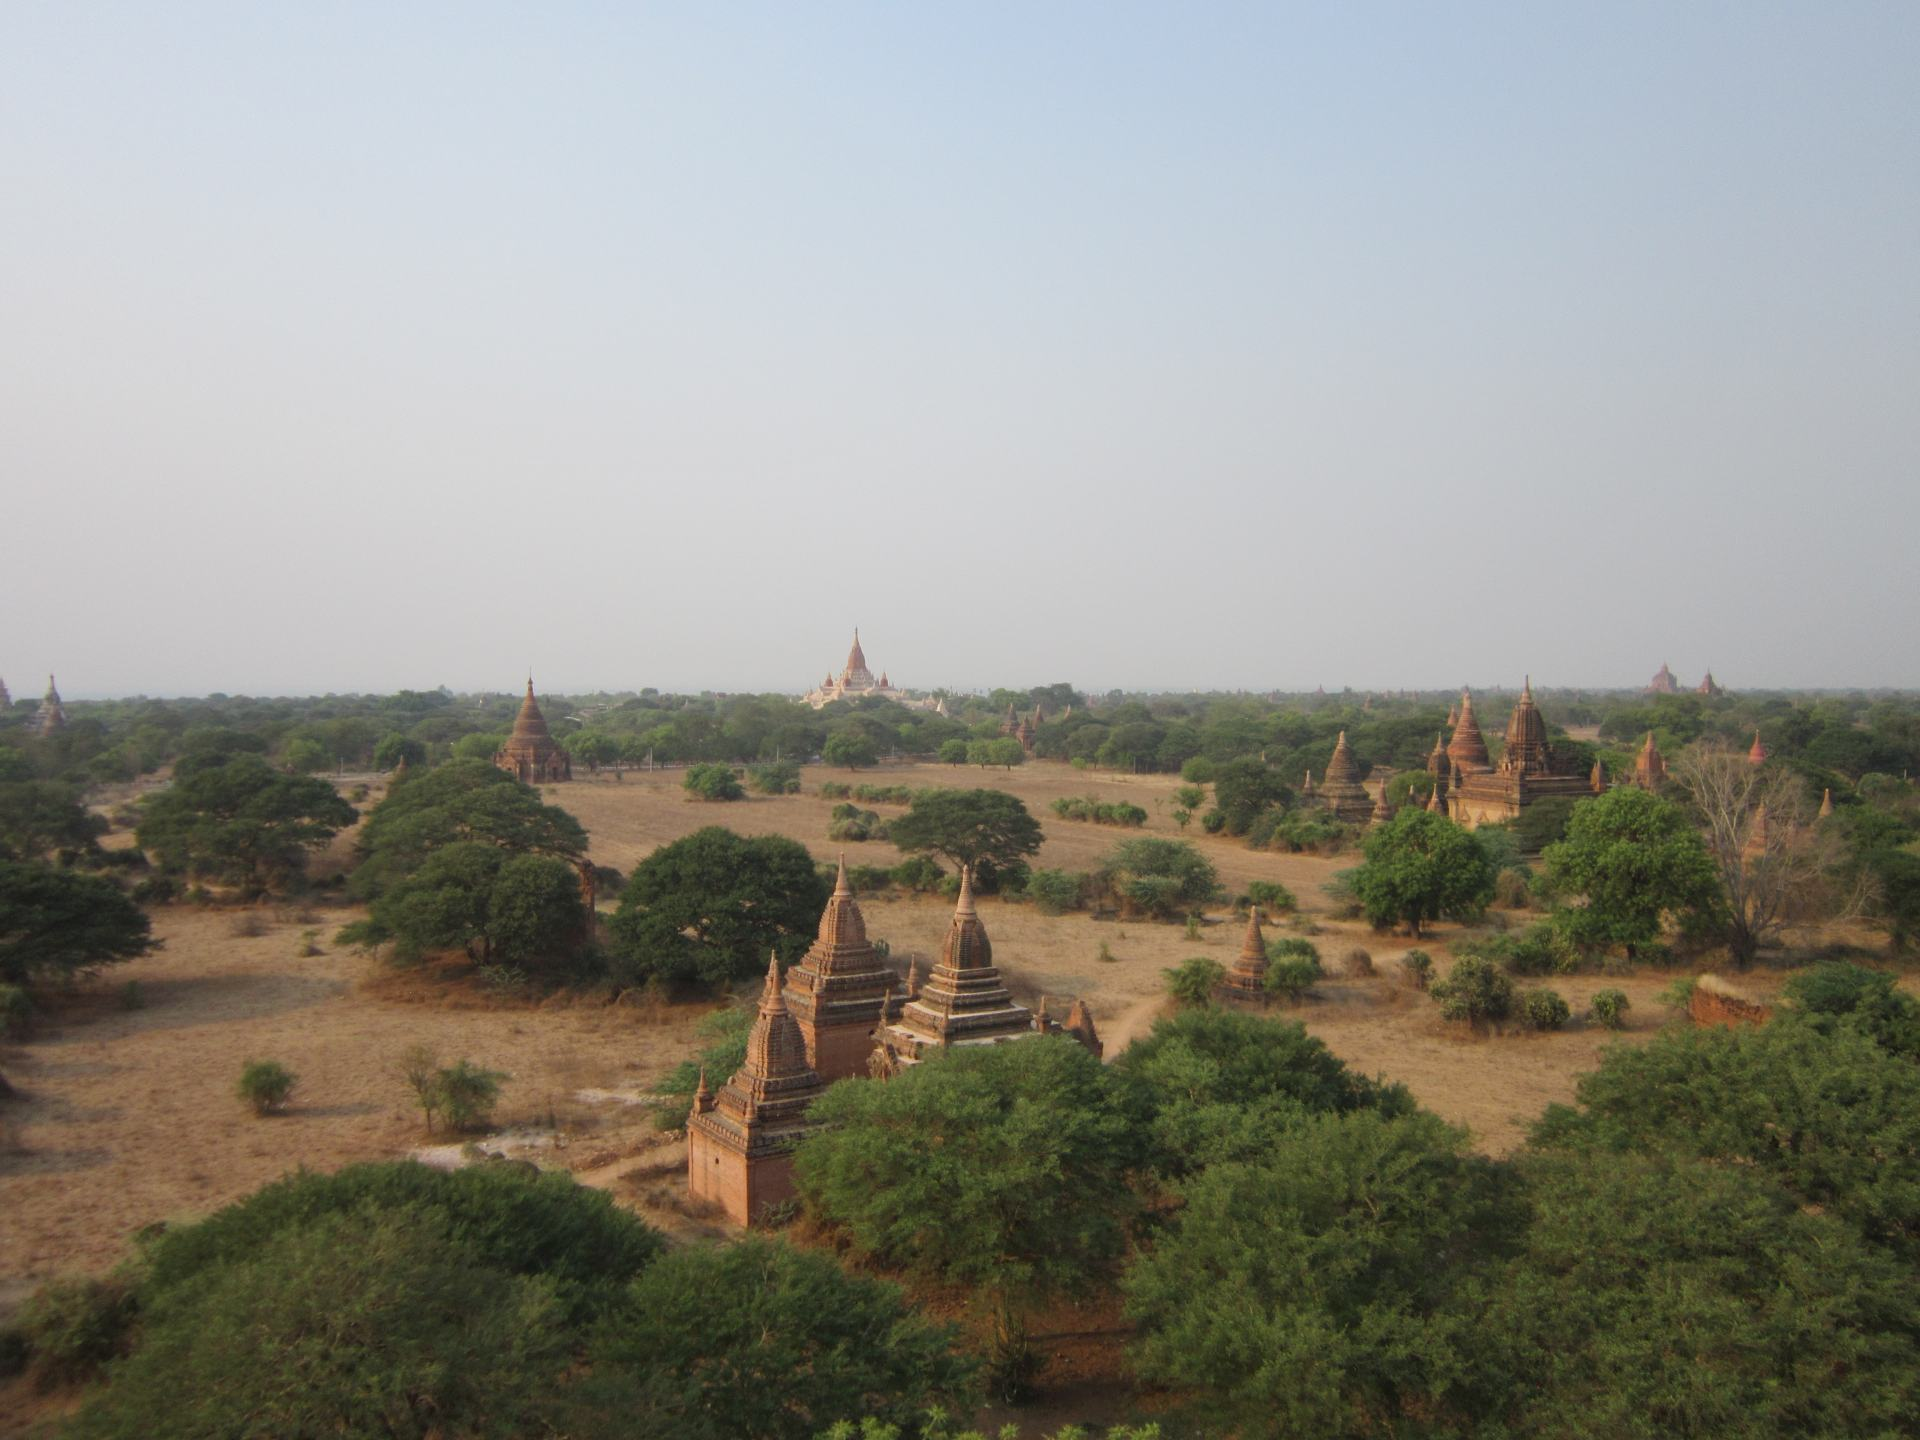 A view of Bagan showing temples, tree's and dusty ground. Demonstrating for these Southeast Asia backpacking tips what Bagan looks like in hot season.